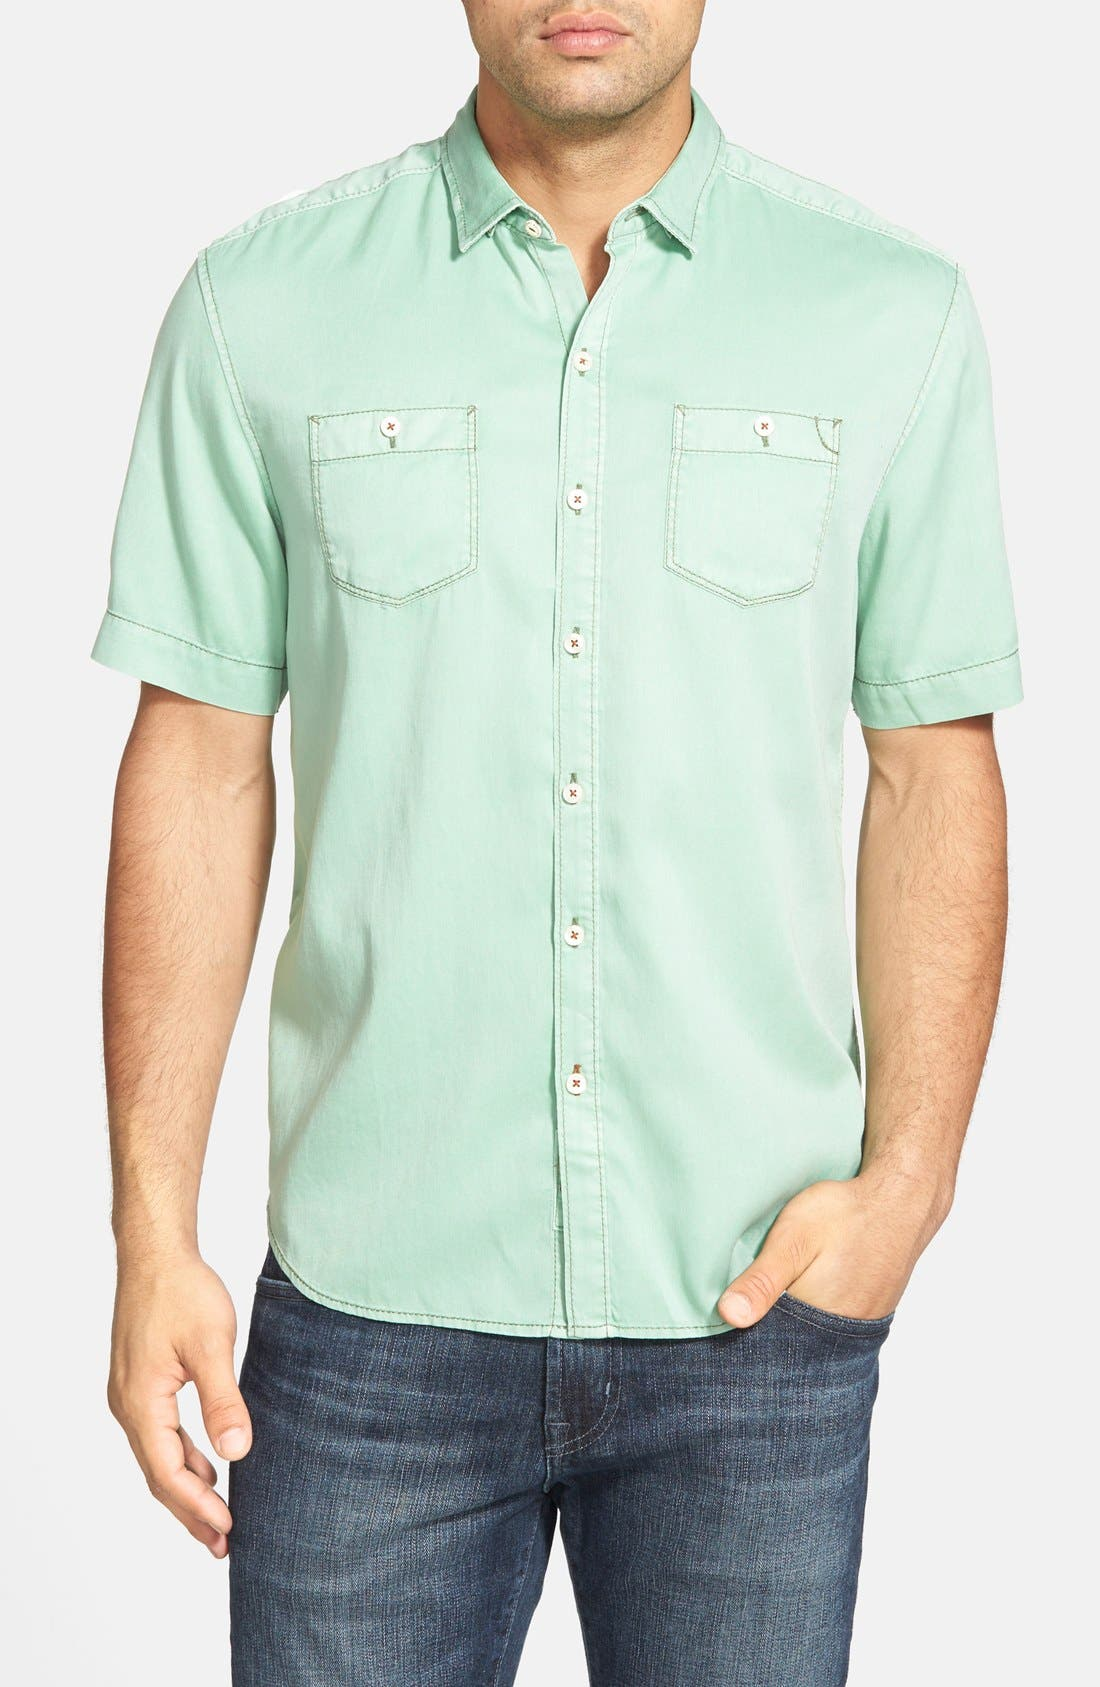 'New Twilly' Island Modern Fit Short Sleeve Twill Shirt,                             Main thumbnail 8, color,